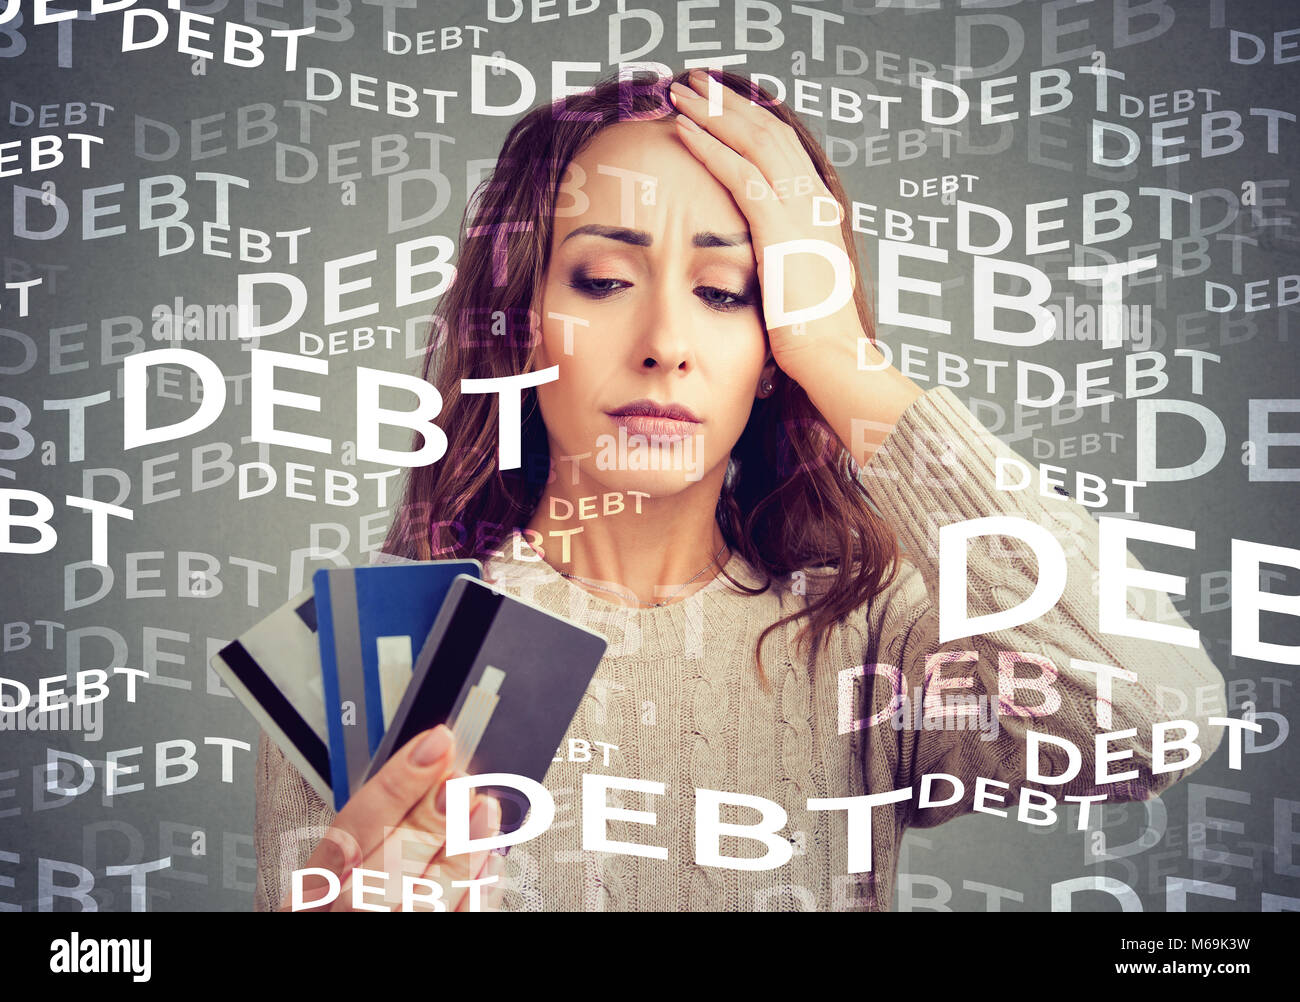 Concerned woman looking at many credit cards scared with huge amount of debt. - Stock Image